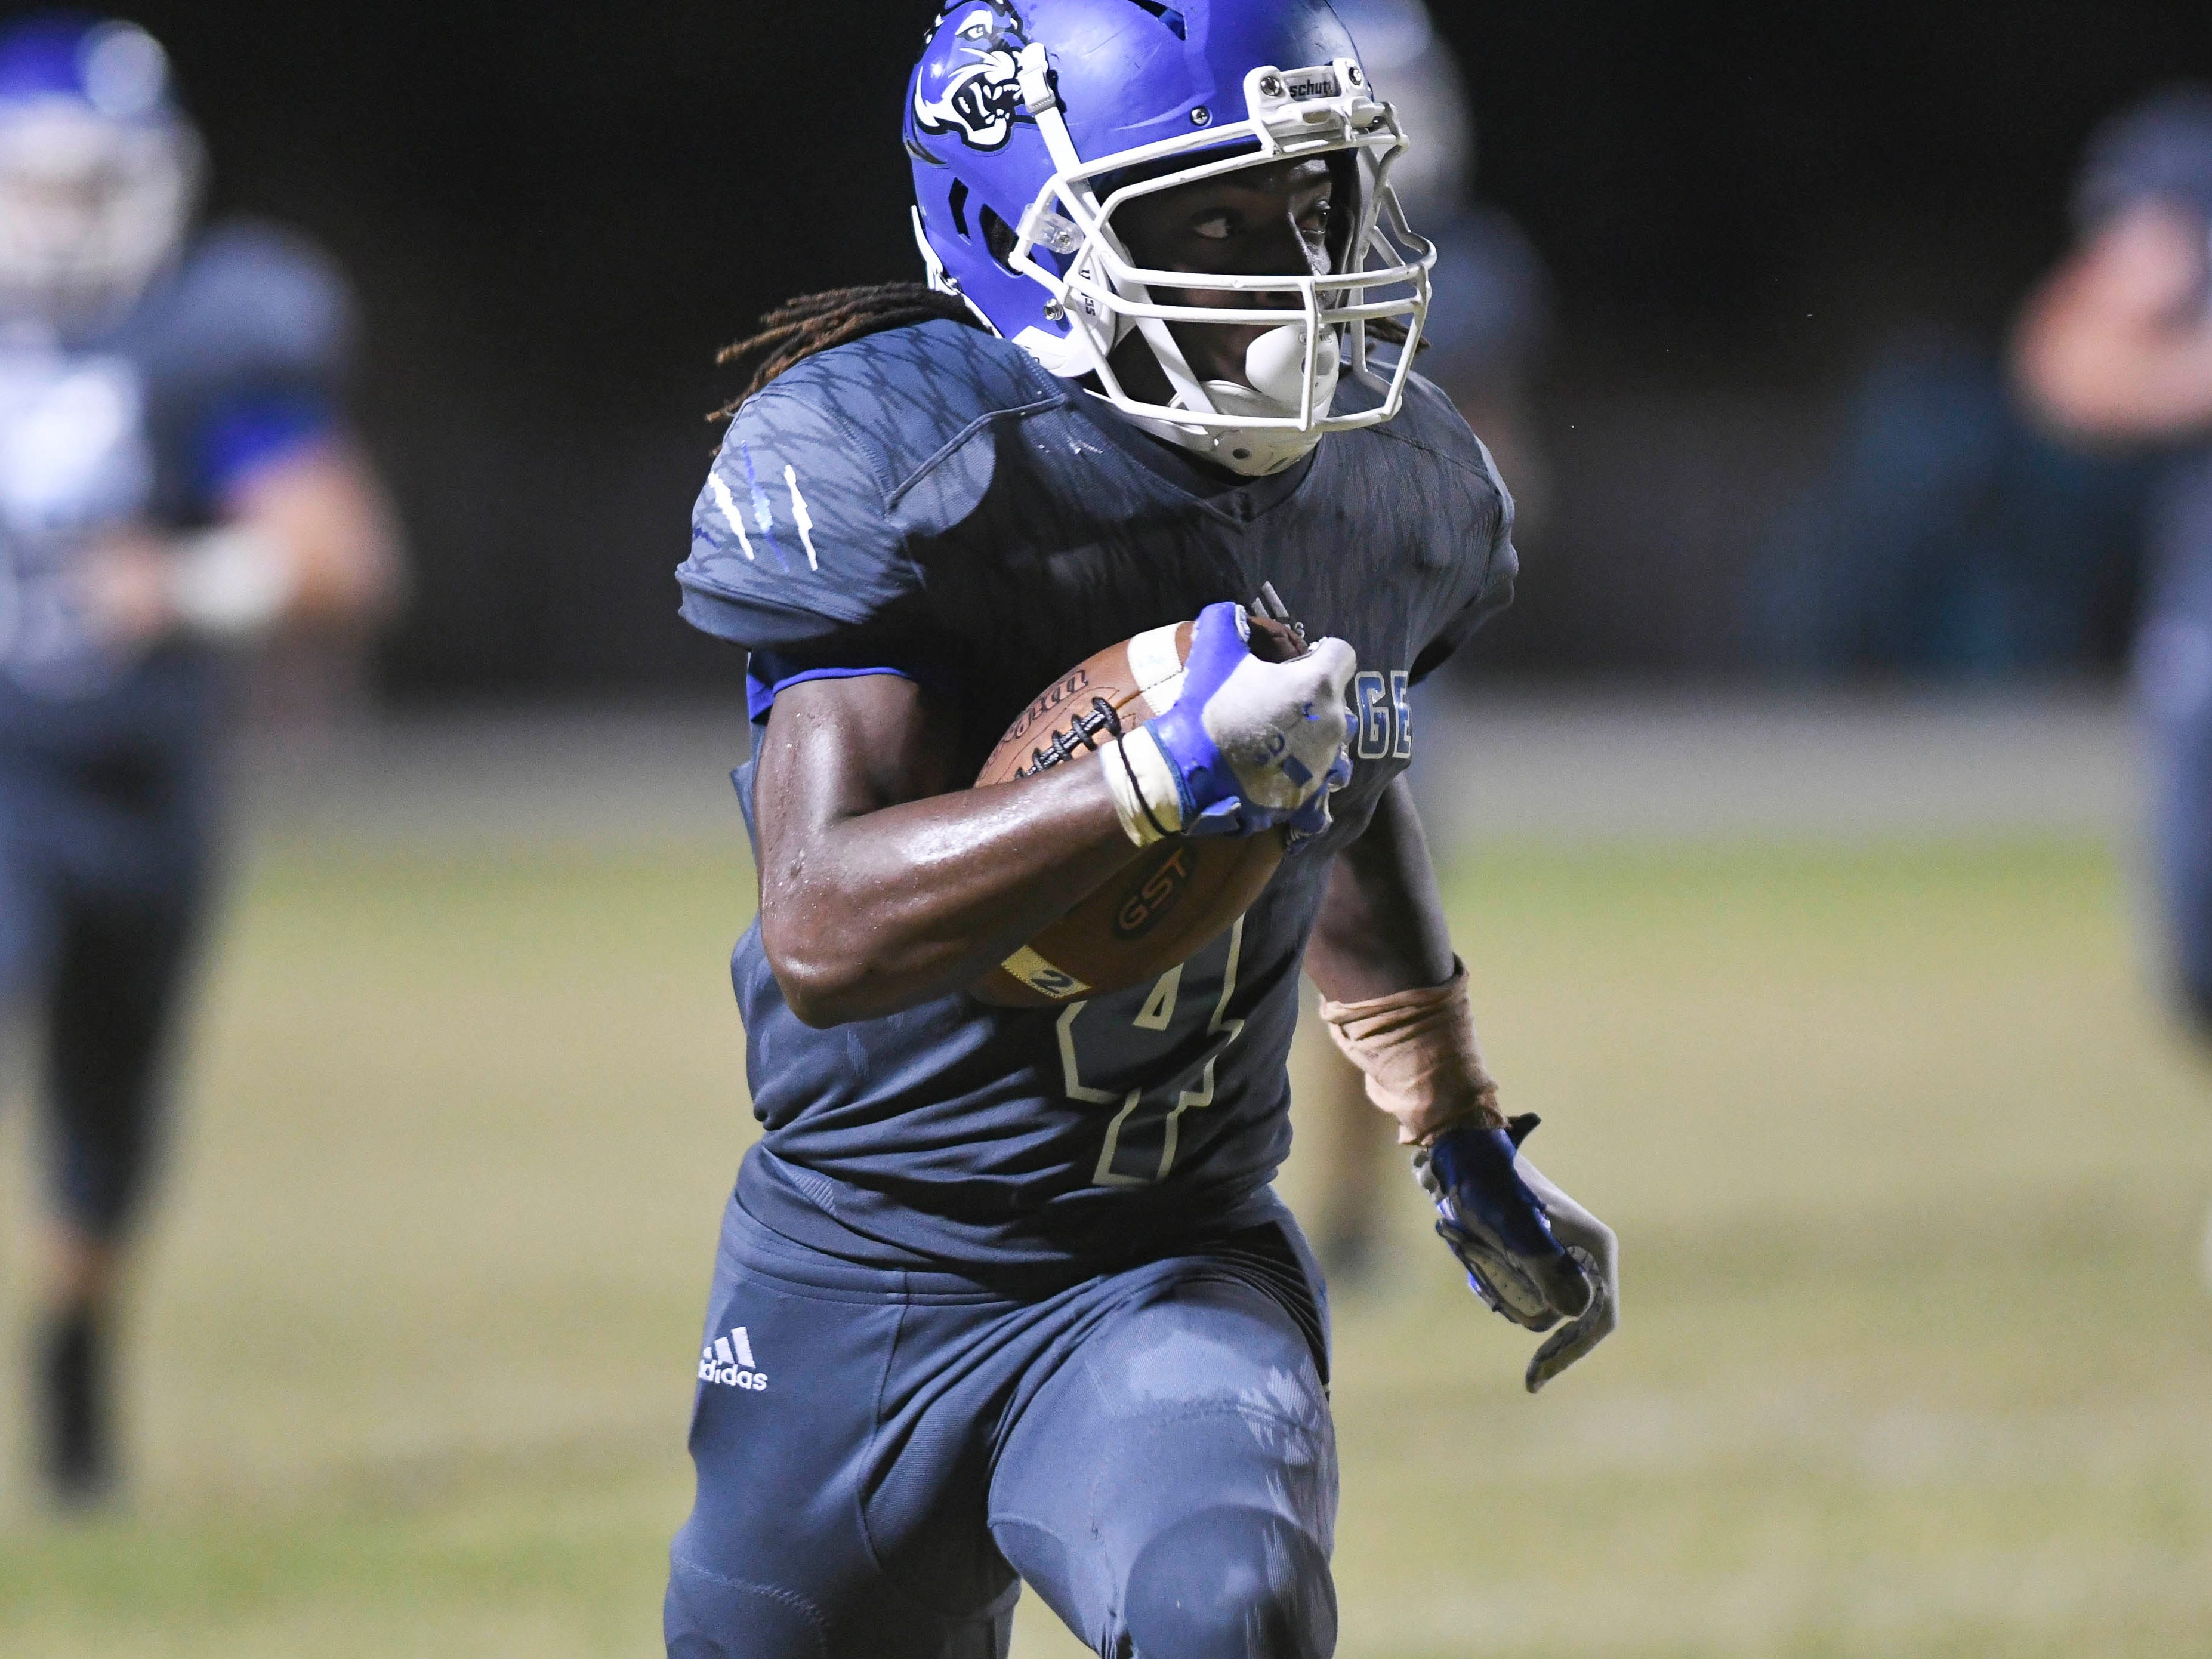 Jumaine McDonald of Heritage scores a TD during Friday's game against Bayside.